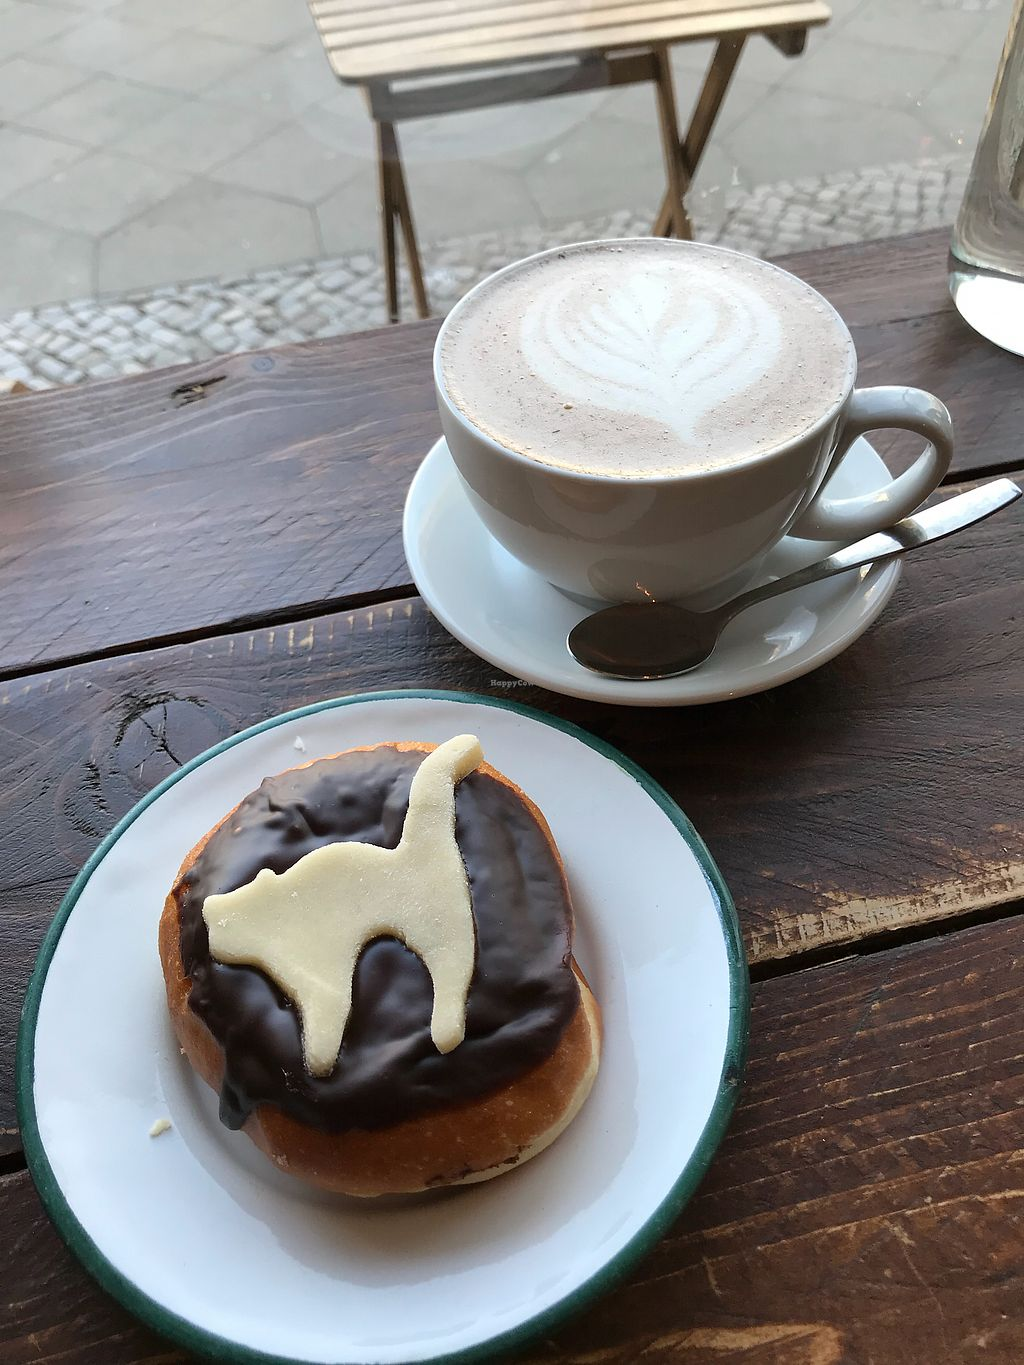 """Photo of Brammibal's Donuts - Maybachufer  by <a href=""""/members/profile/JijiVanMeow"""">JijiVanMeow</a> <br/>Hot chocolate & chocolate filled donut <br/> February 22, 2018  - <a href='/contact/abuse/image/65783/362365'>Report</a>"""